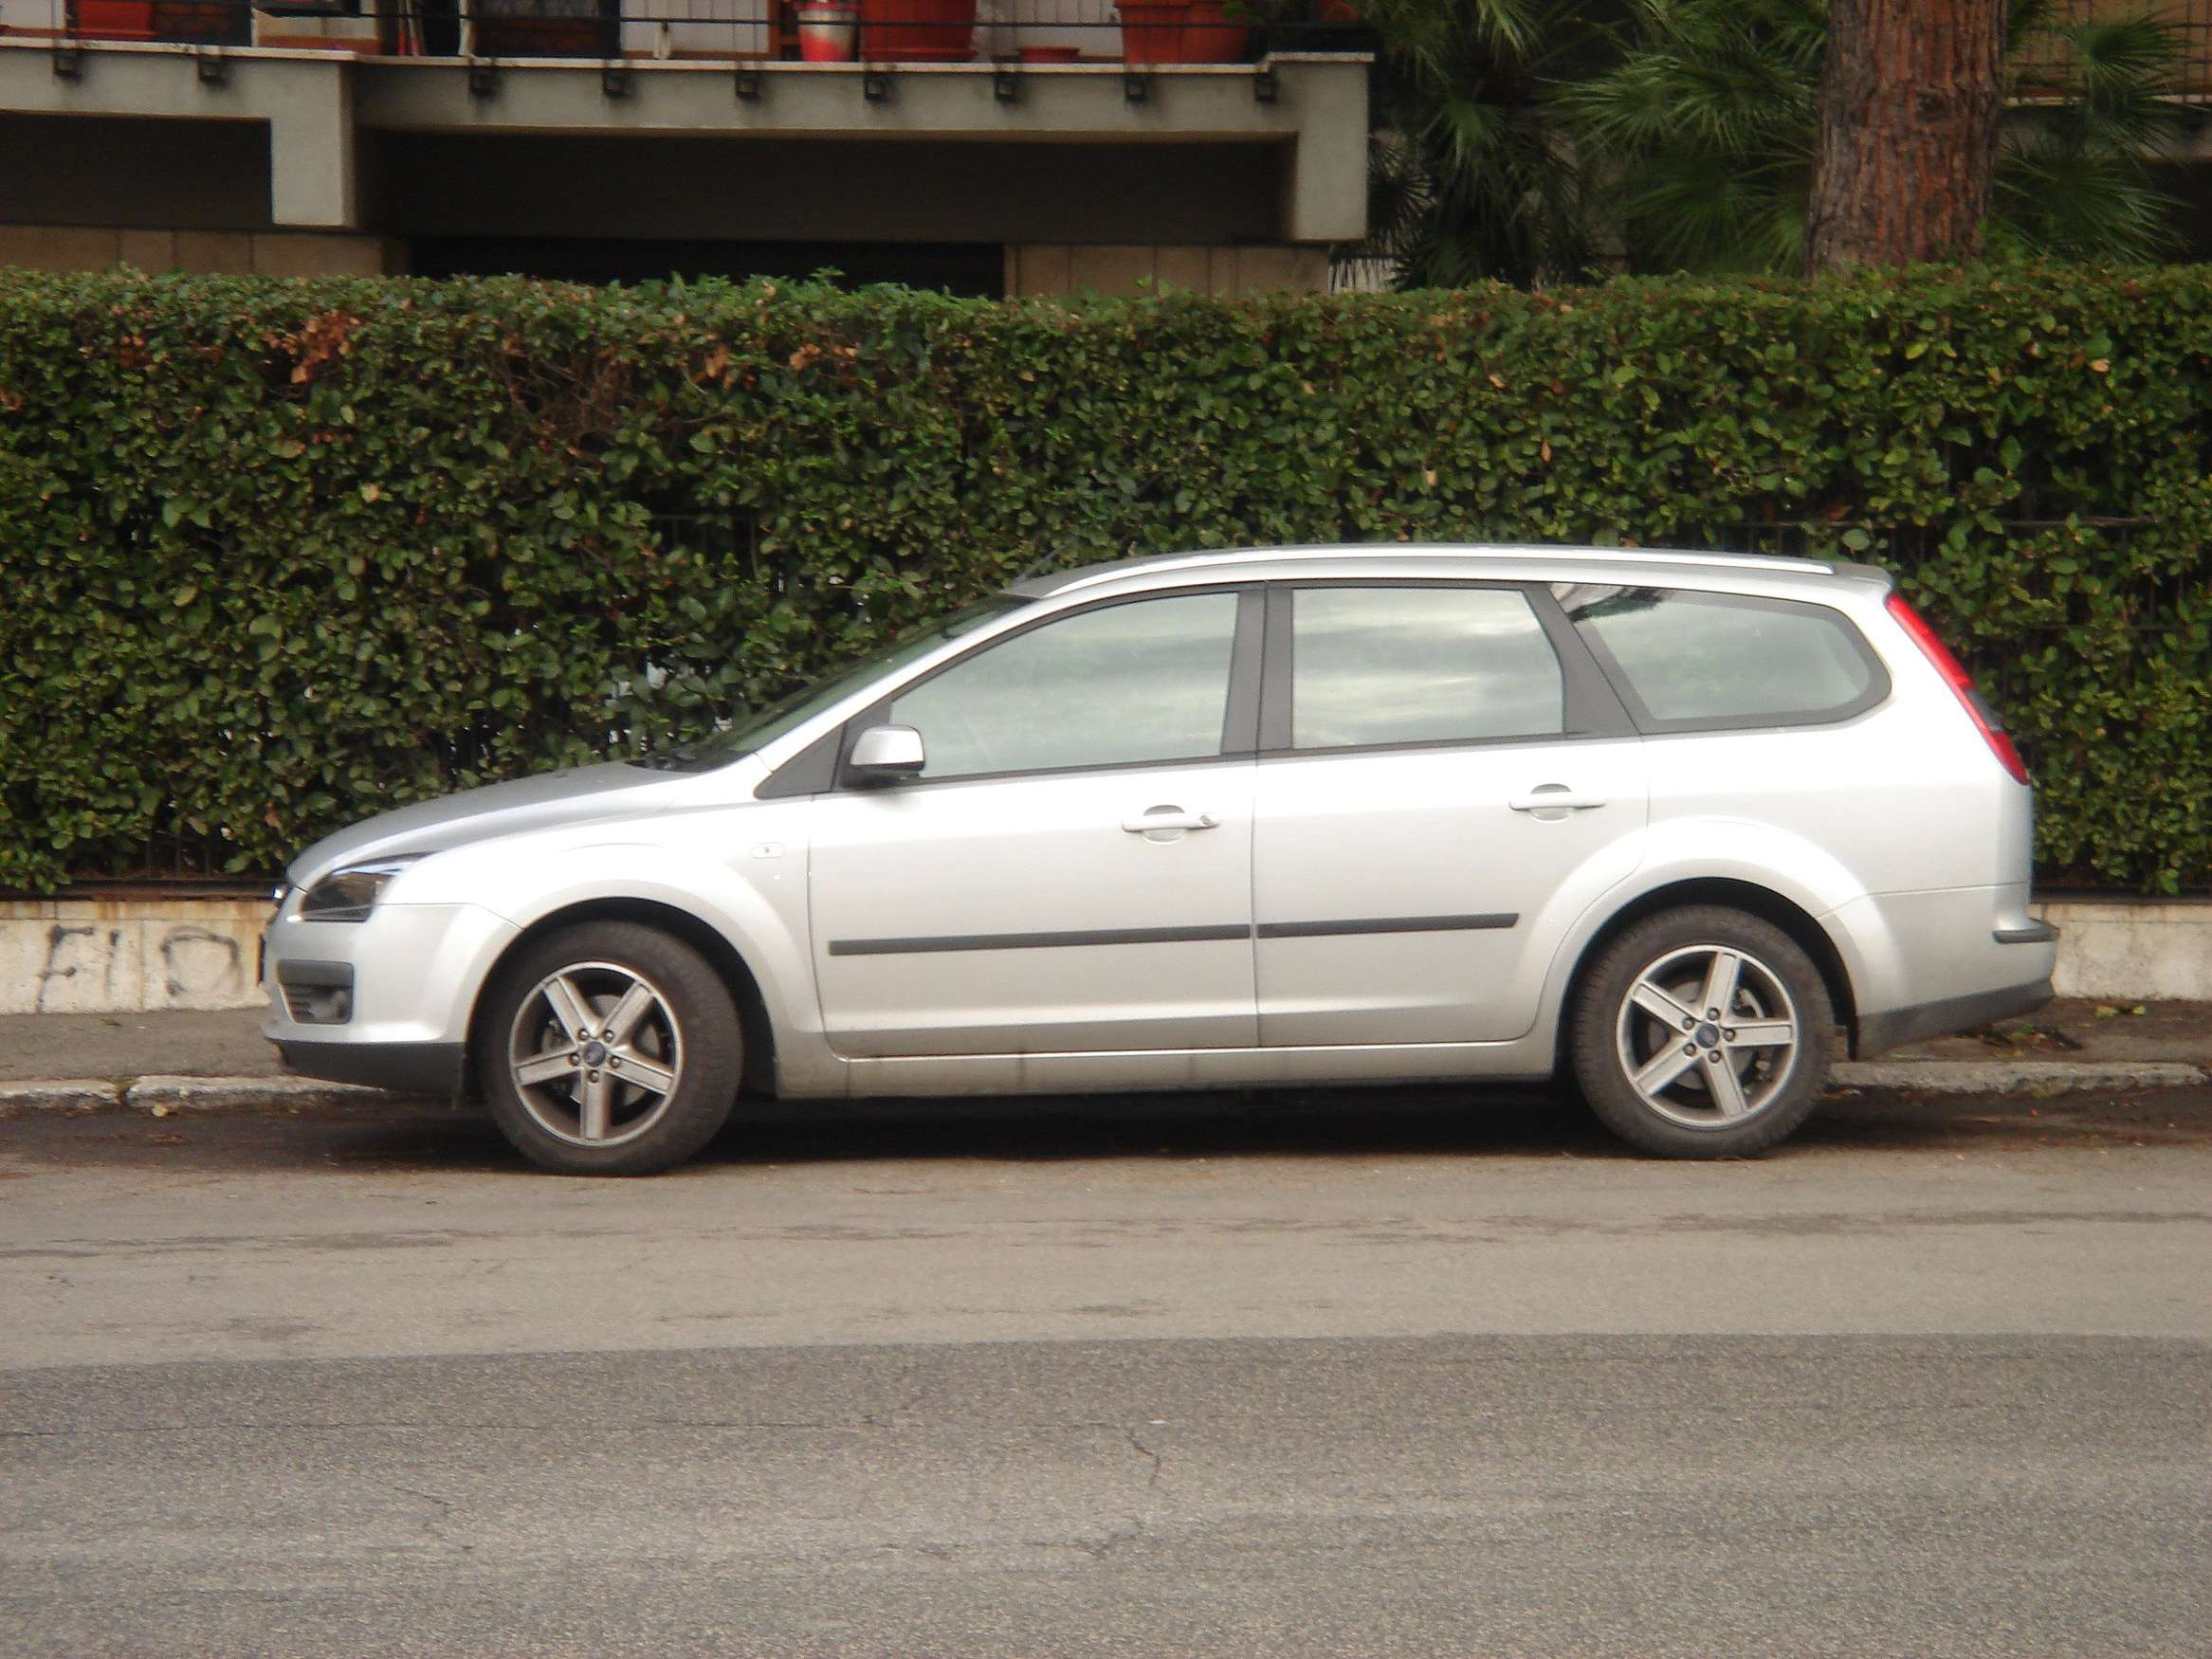 Ford Focus Wagon #9884582